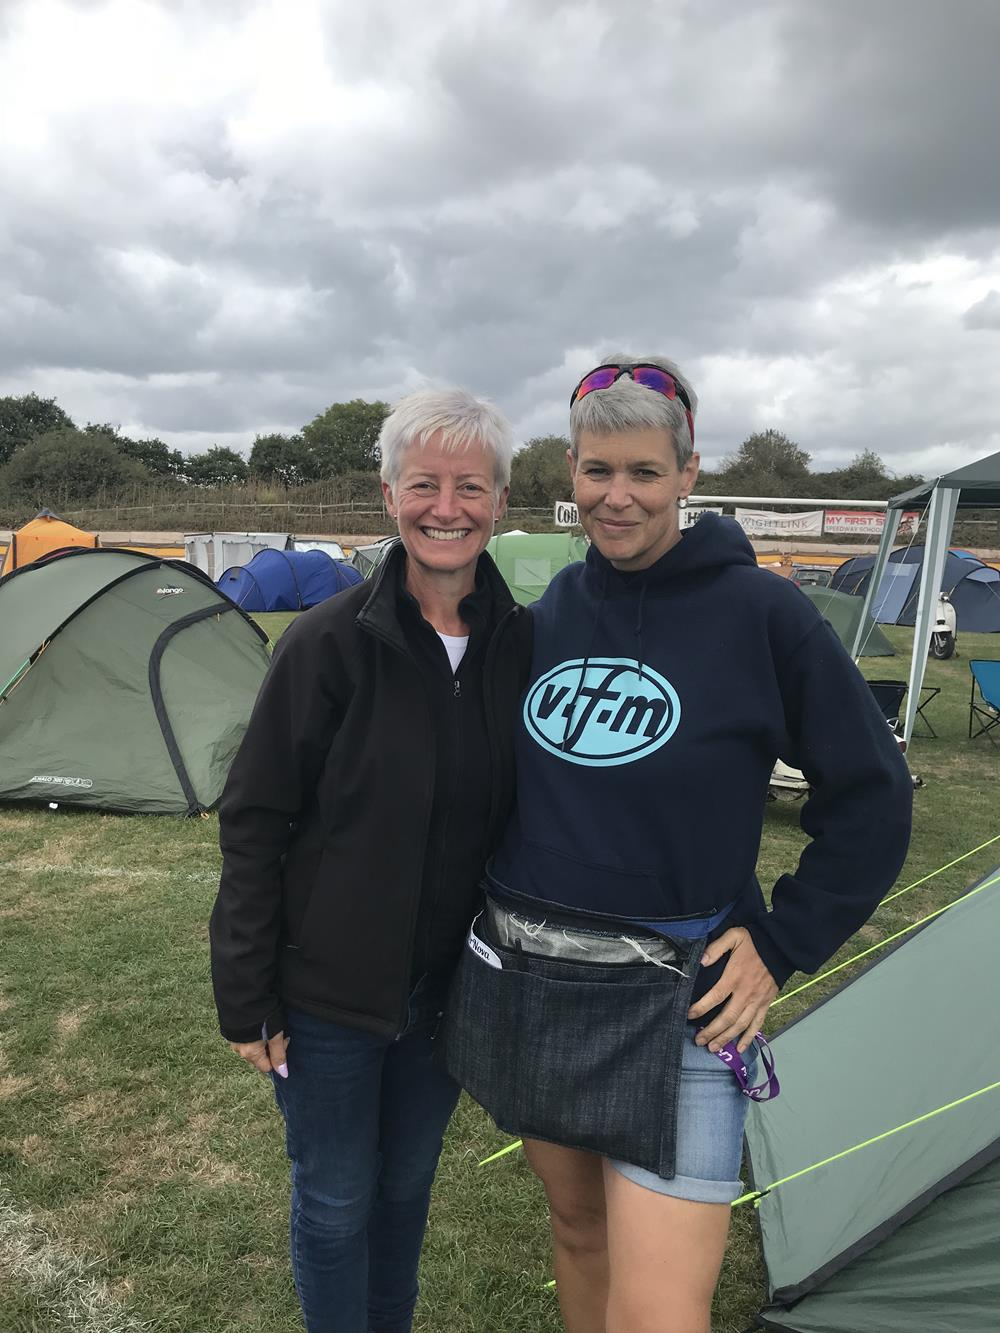 Ali and Tori amongst the tents at the Isle of Wight scooter rally in 2018